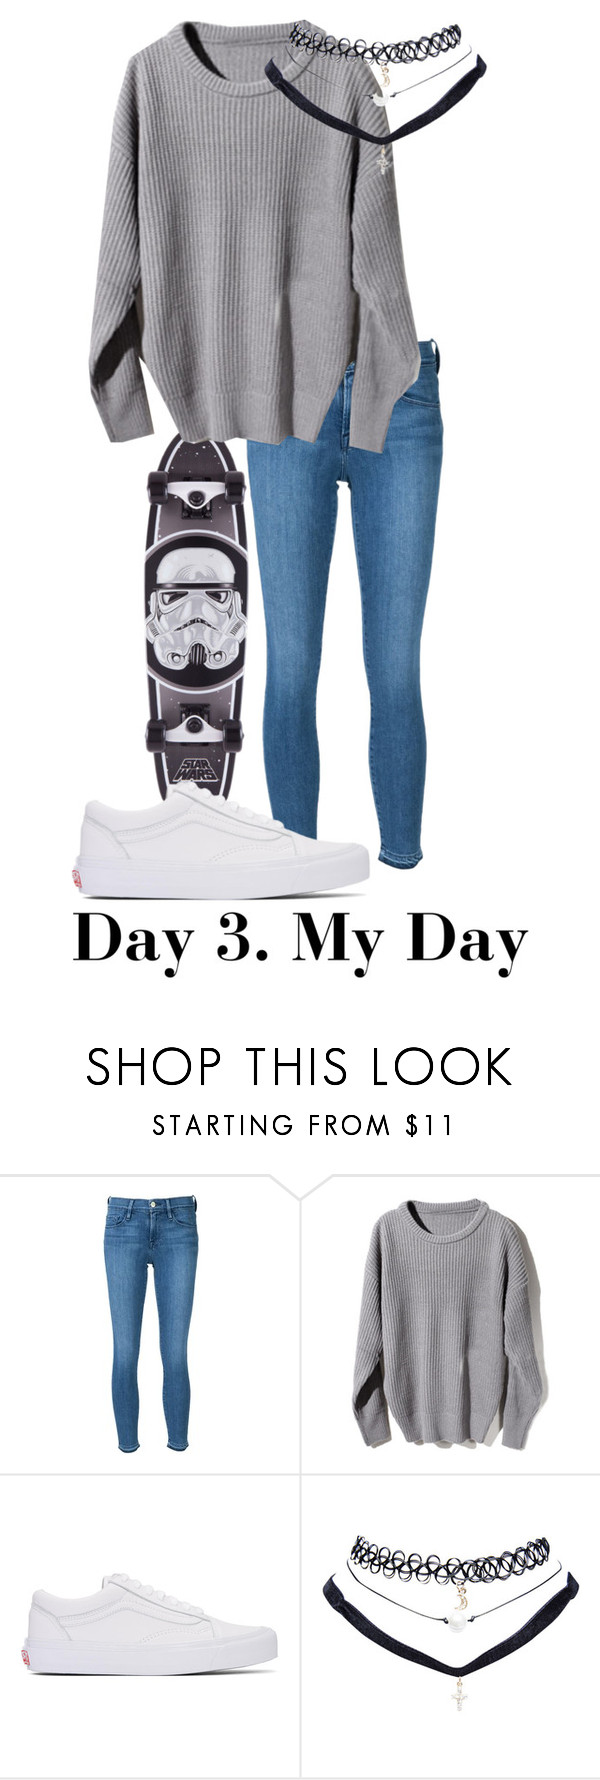 """""""Day 3."""" by jadettaa ❤ liked on Polyvore featuring Frame Denim, Vans and Wet Seal"""